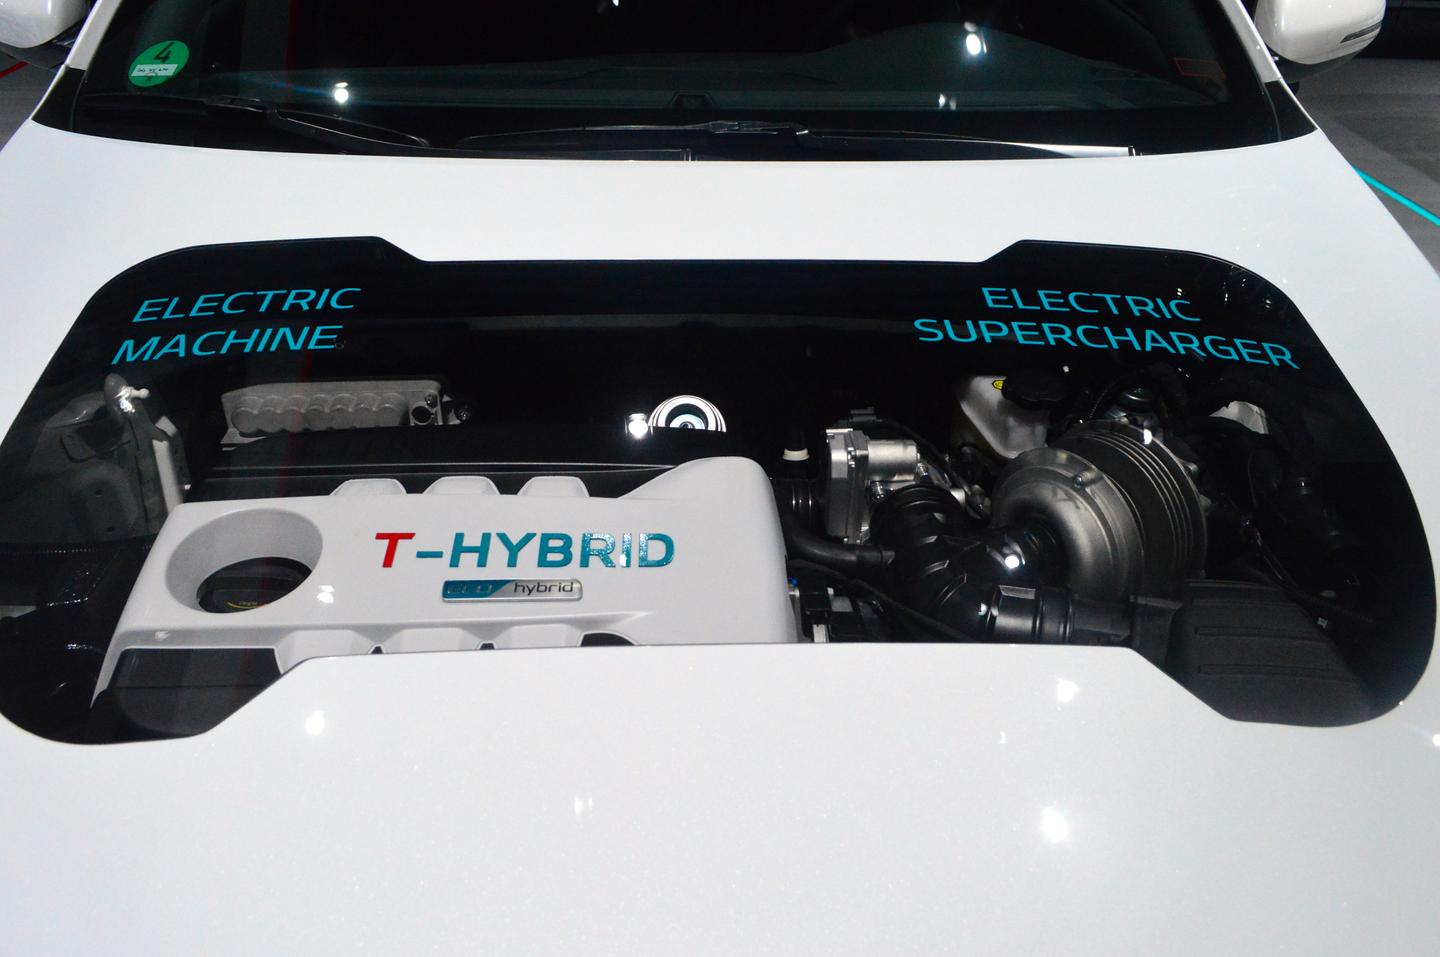 Kia highlights its powertrain with a transparent hood panel (Photo: C.C. Weiss/Gizmag)